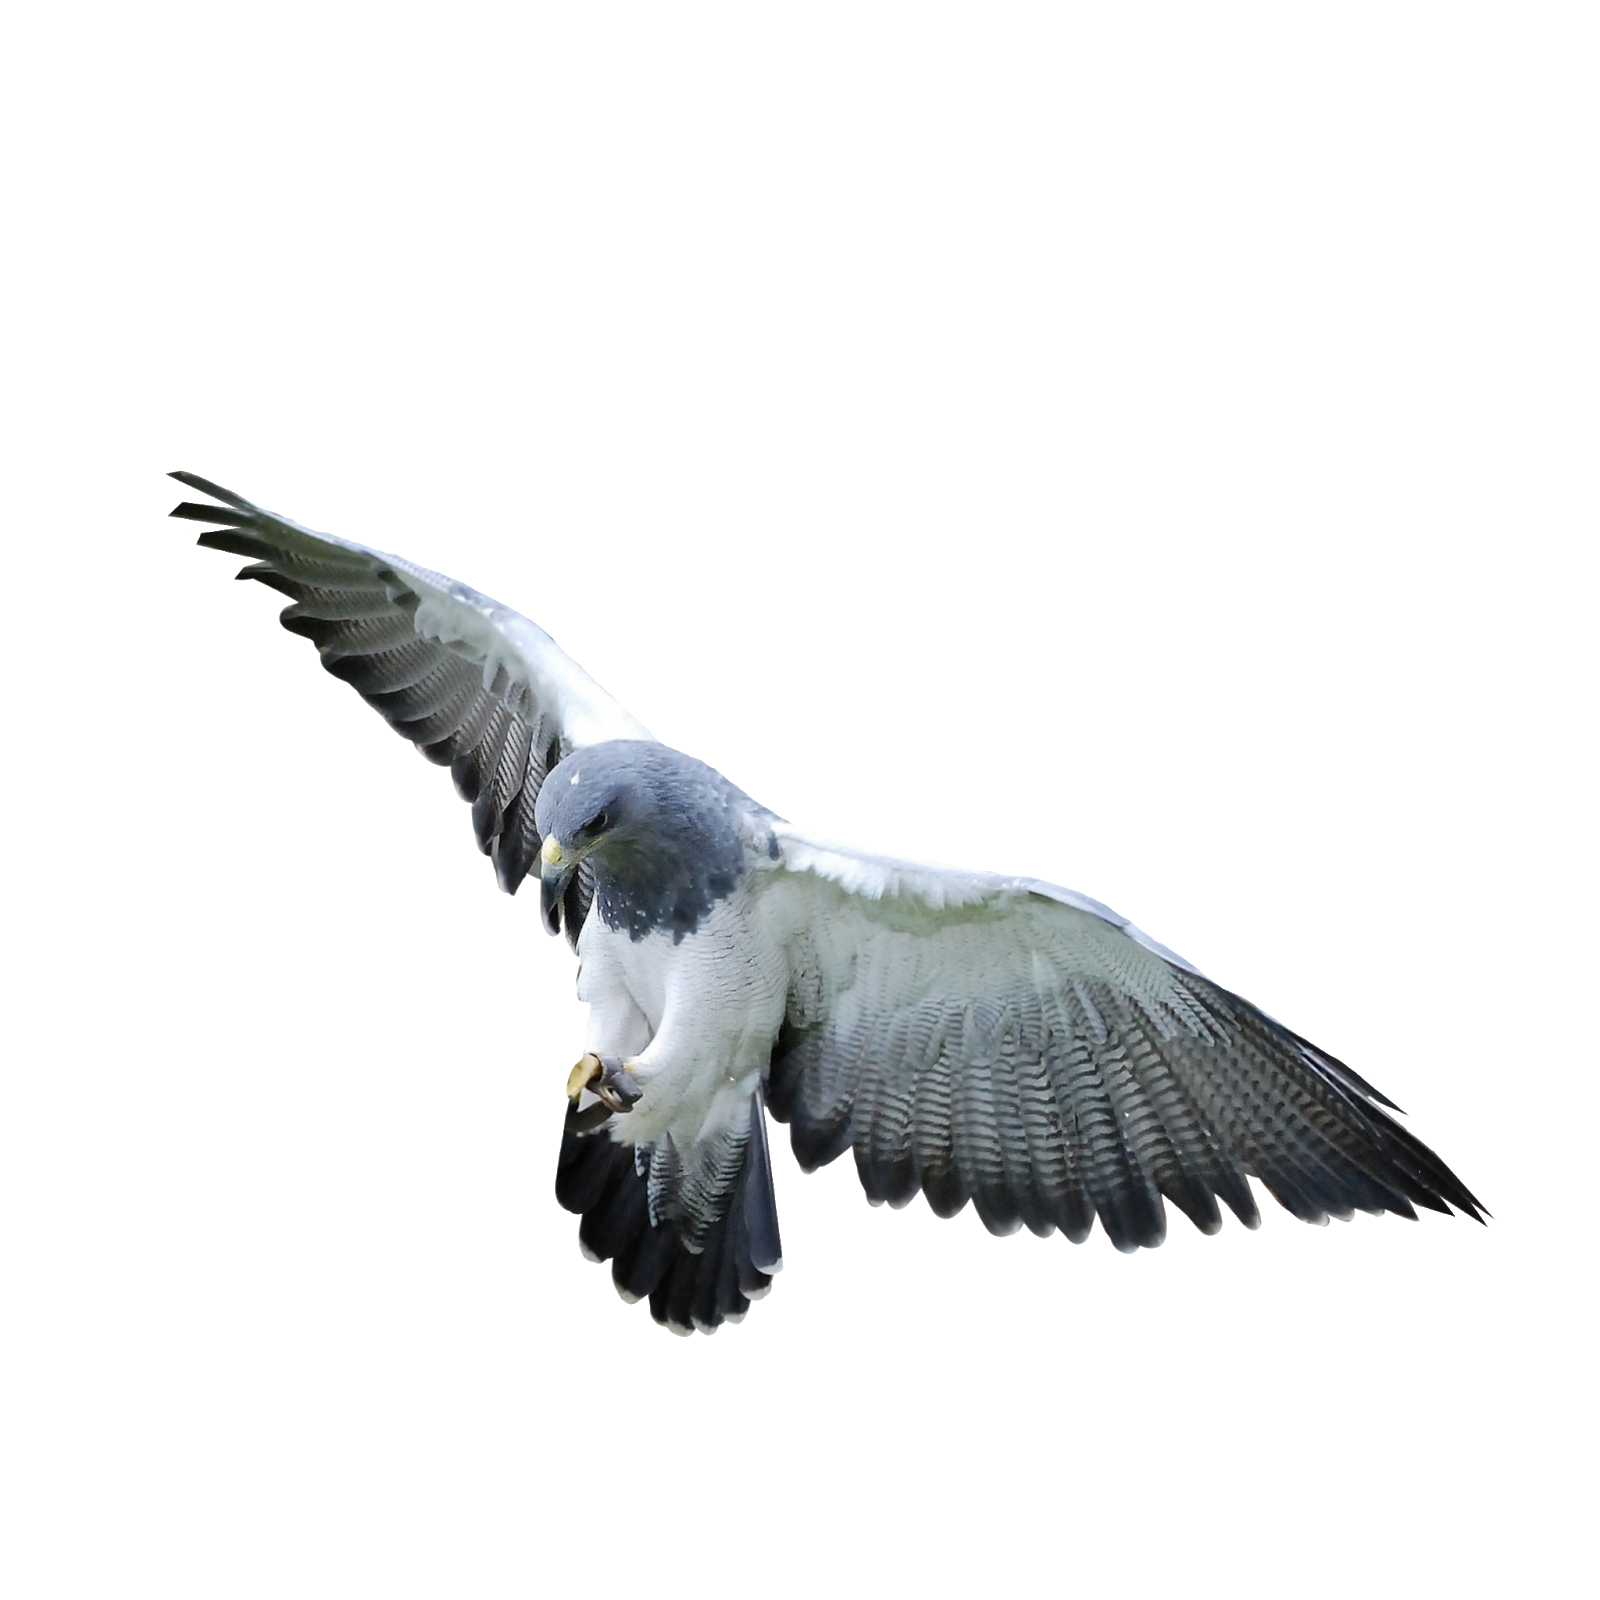 Pigeon photo editing Background Png Download for Picsart ...